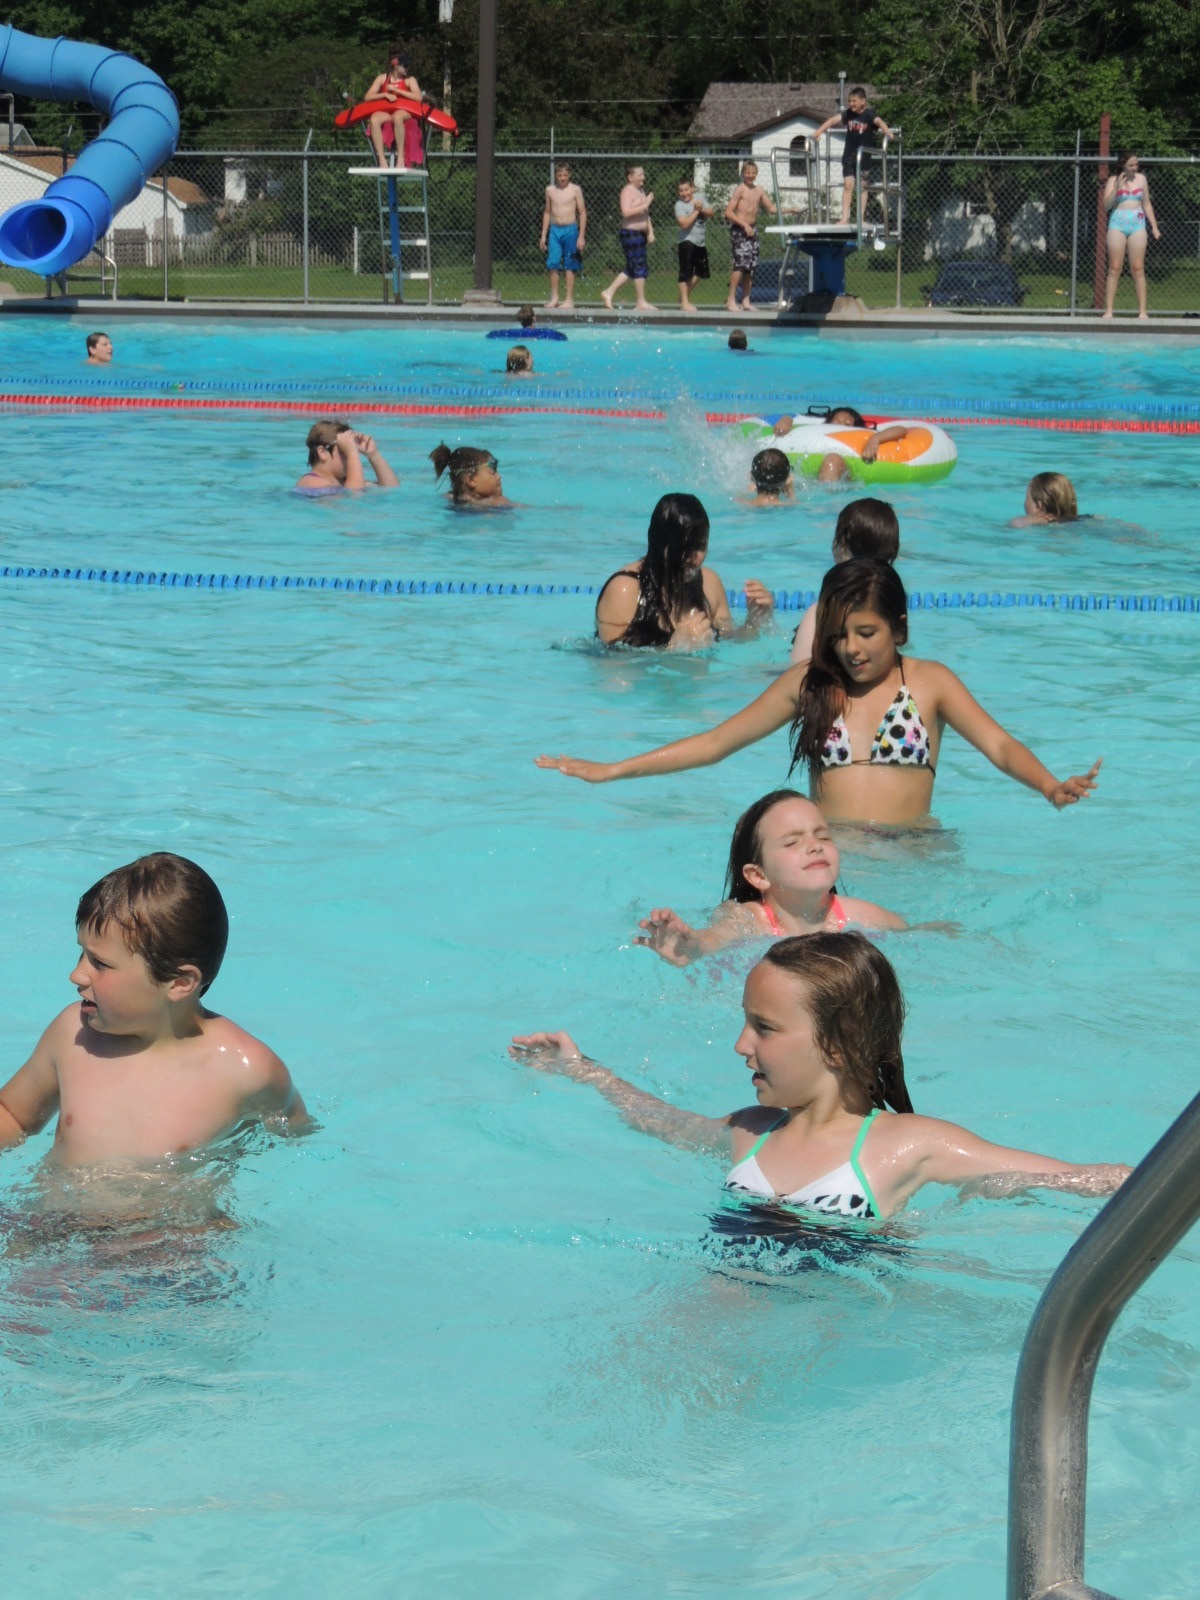 Hours Told For Jeff Swimming Poolgreene County News Online Greene County News Online